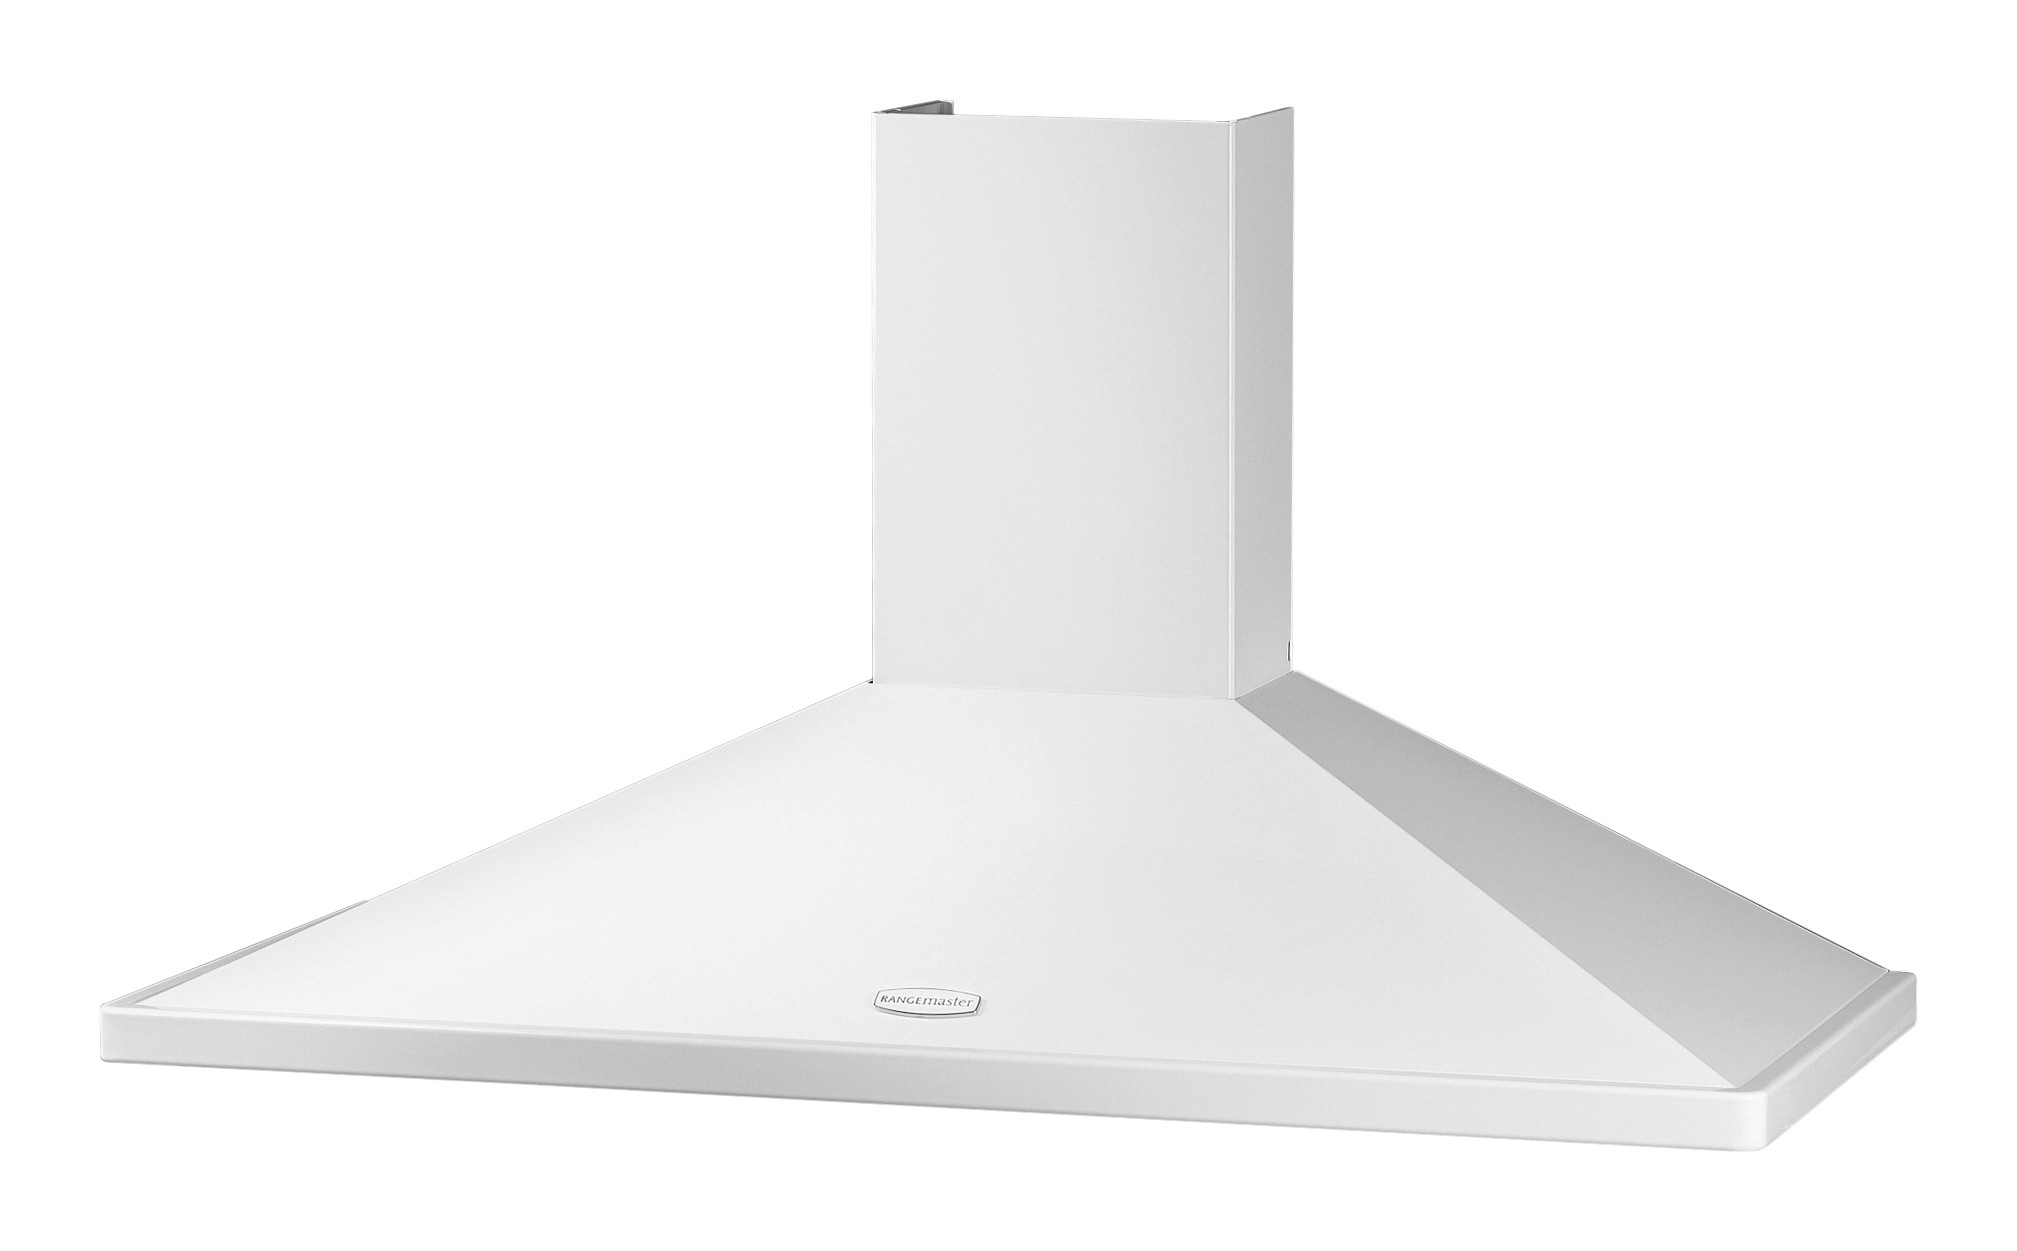 Rangemaster 110cm Chimney Cooker Hood White with Chrome Trim RMHDC110WC/ 89370